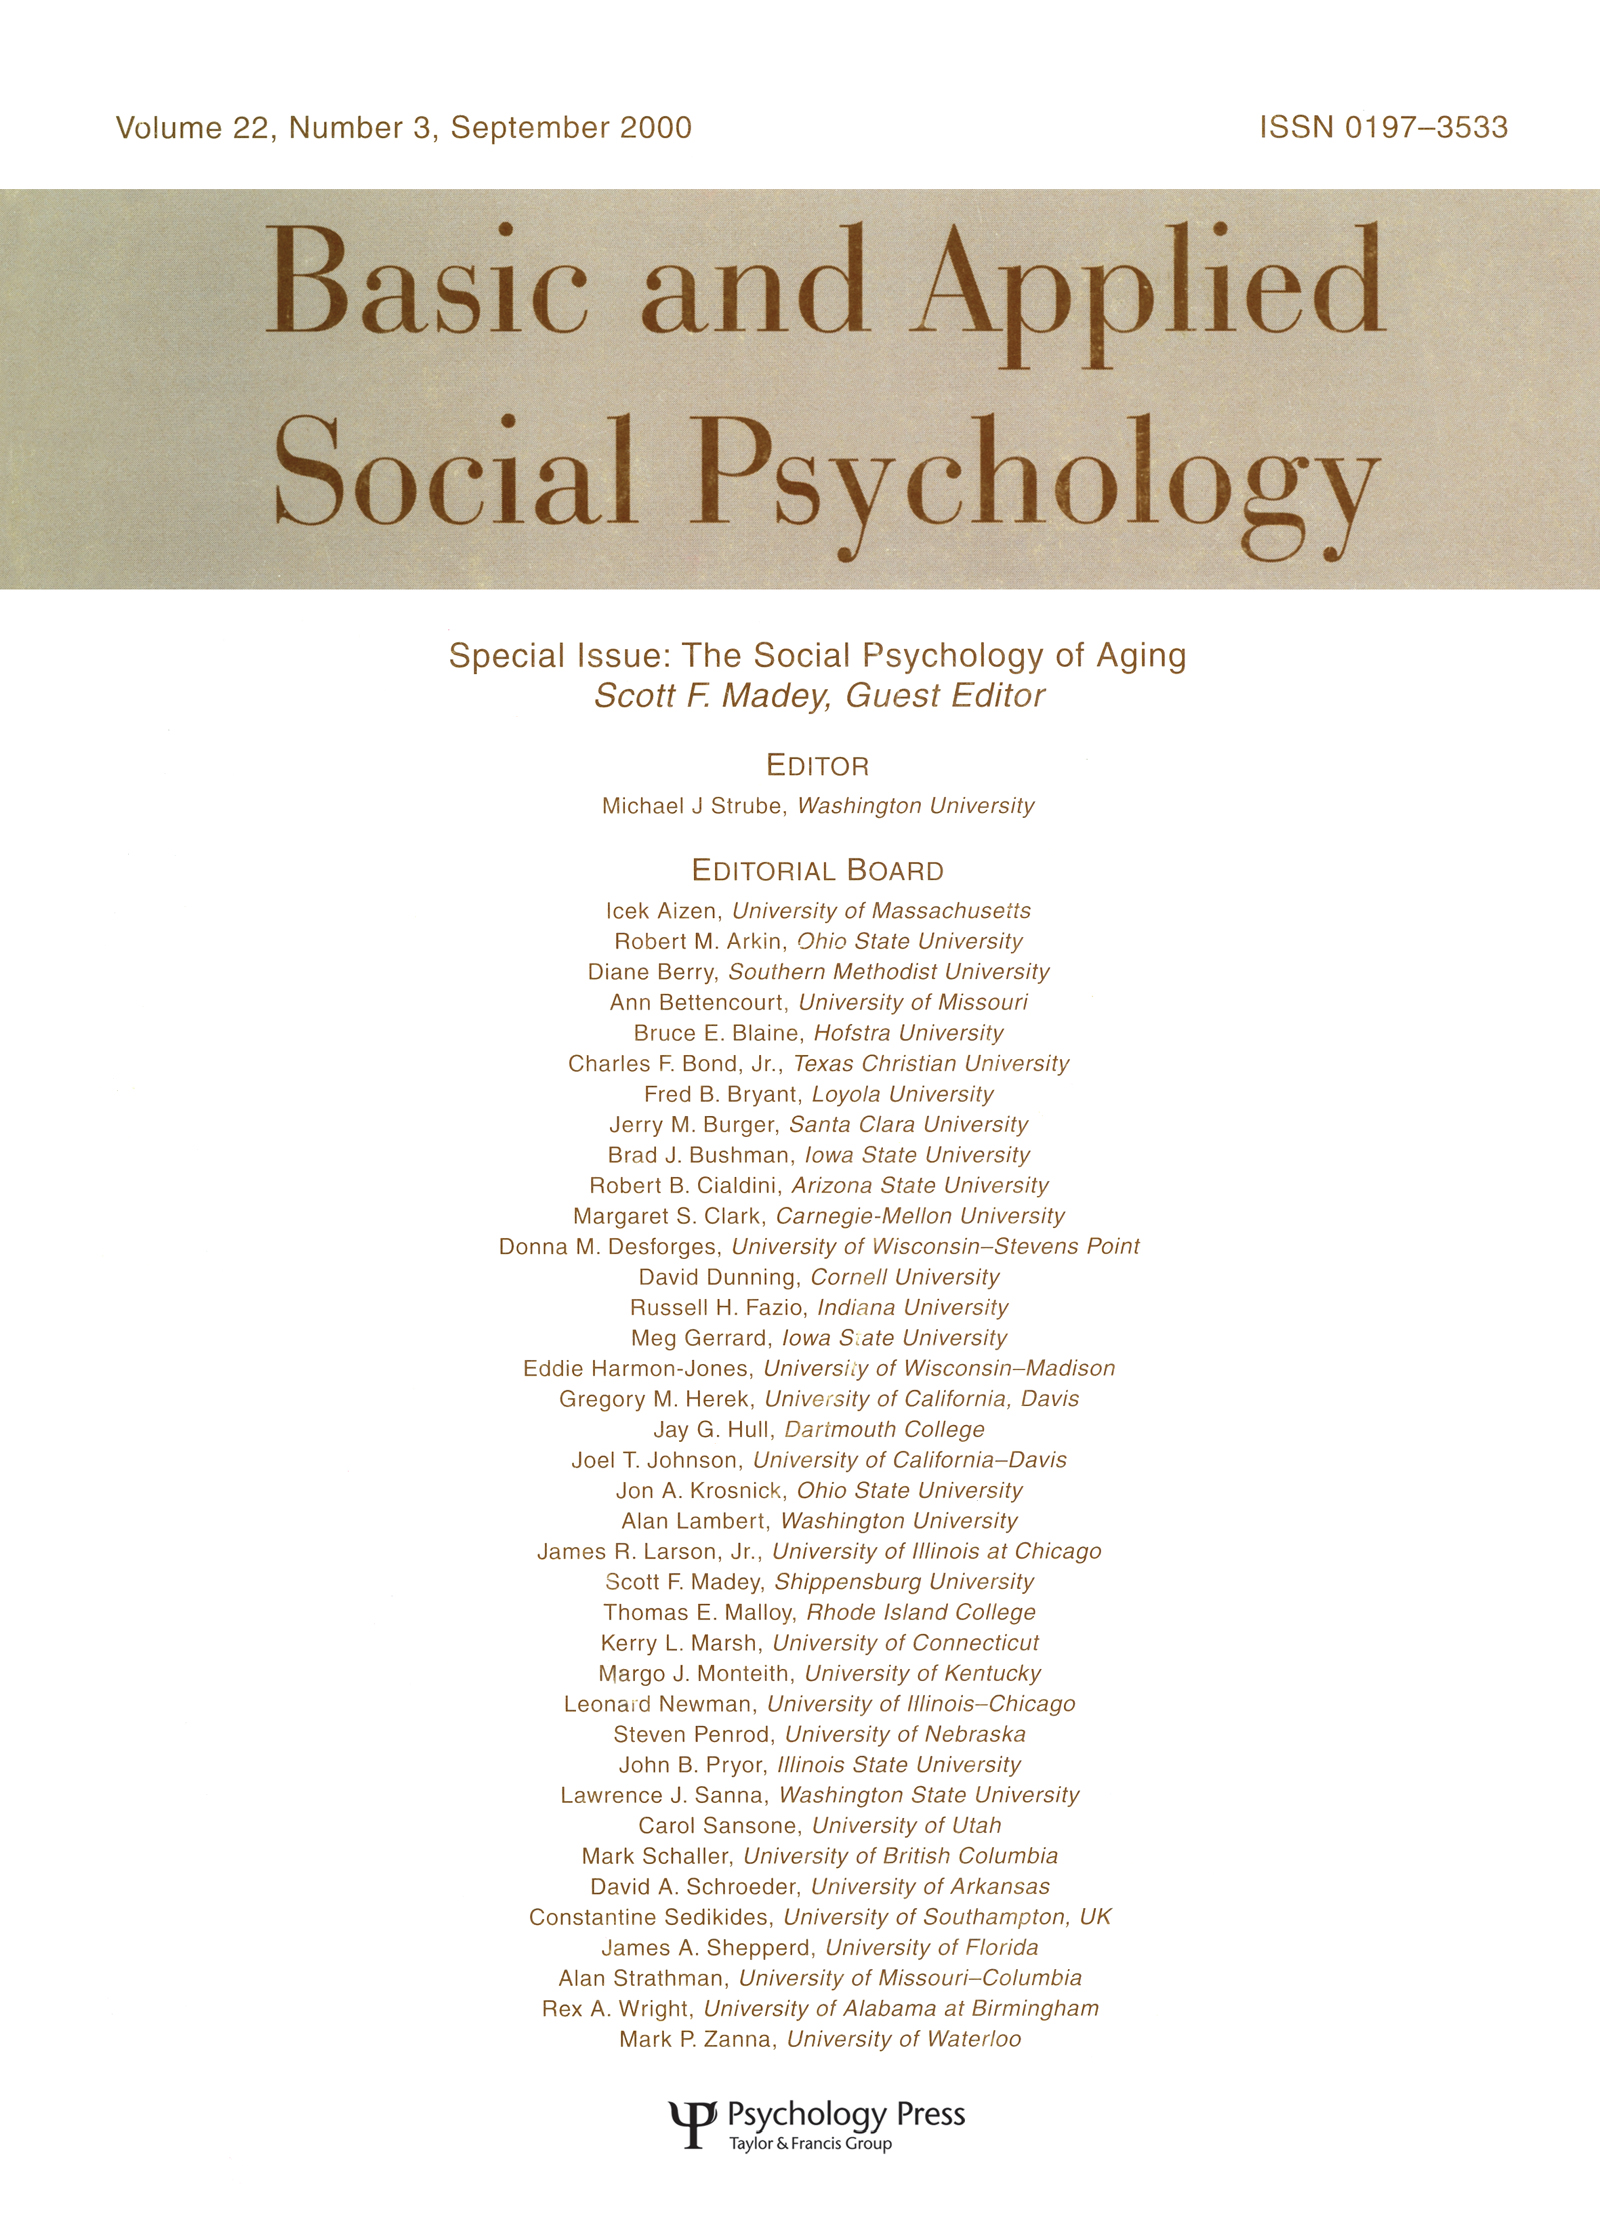 The Social Psychology of Aging